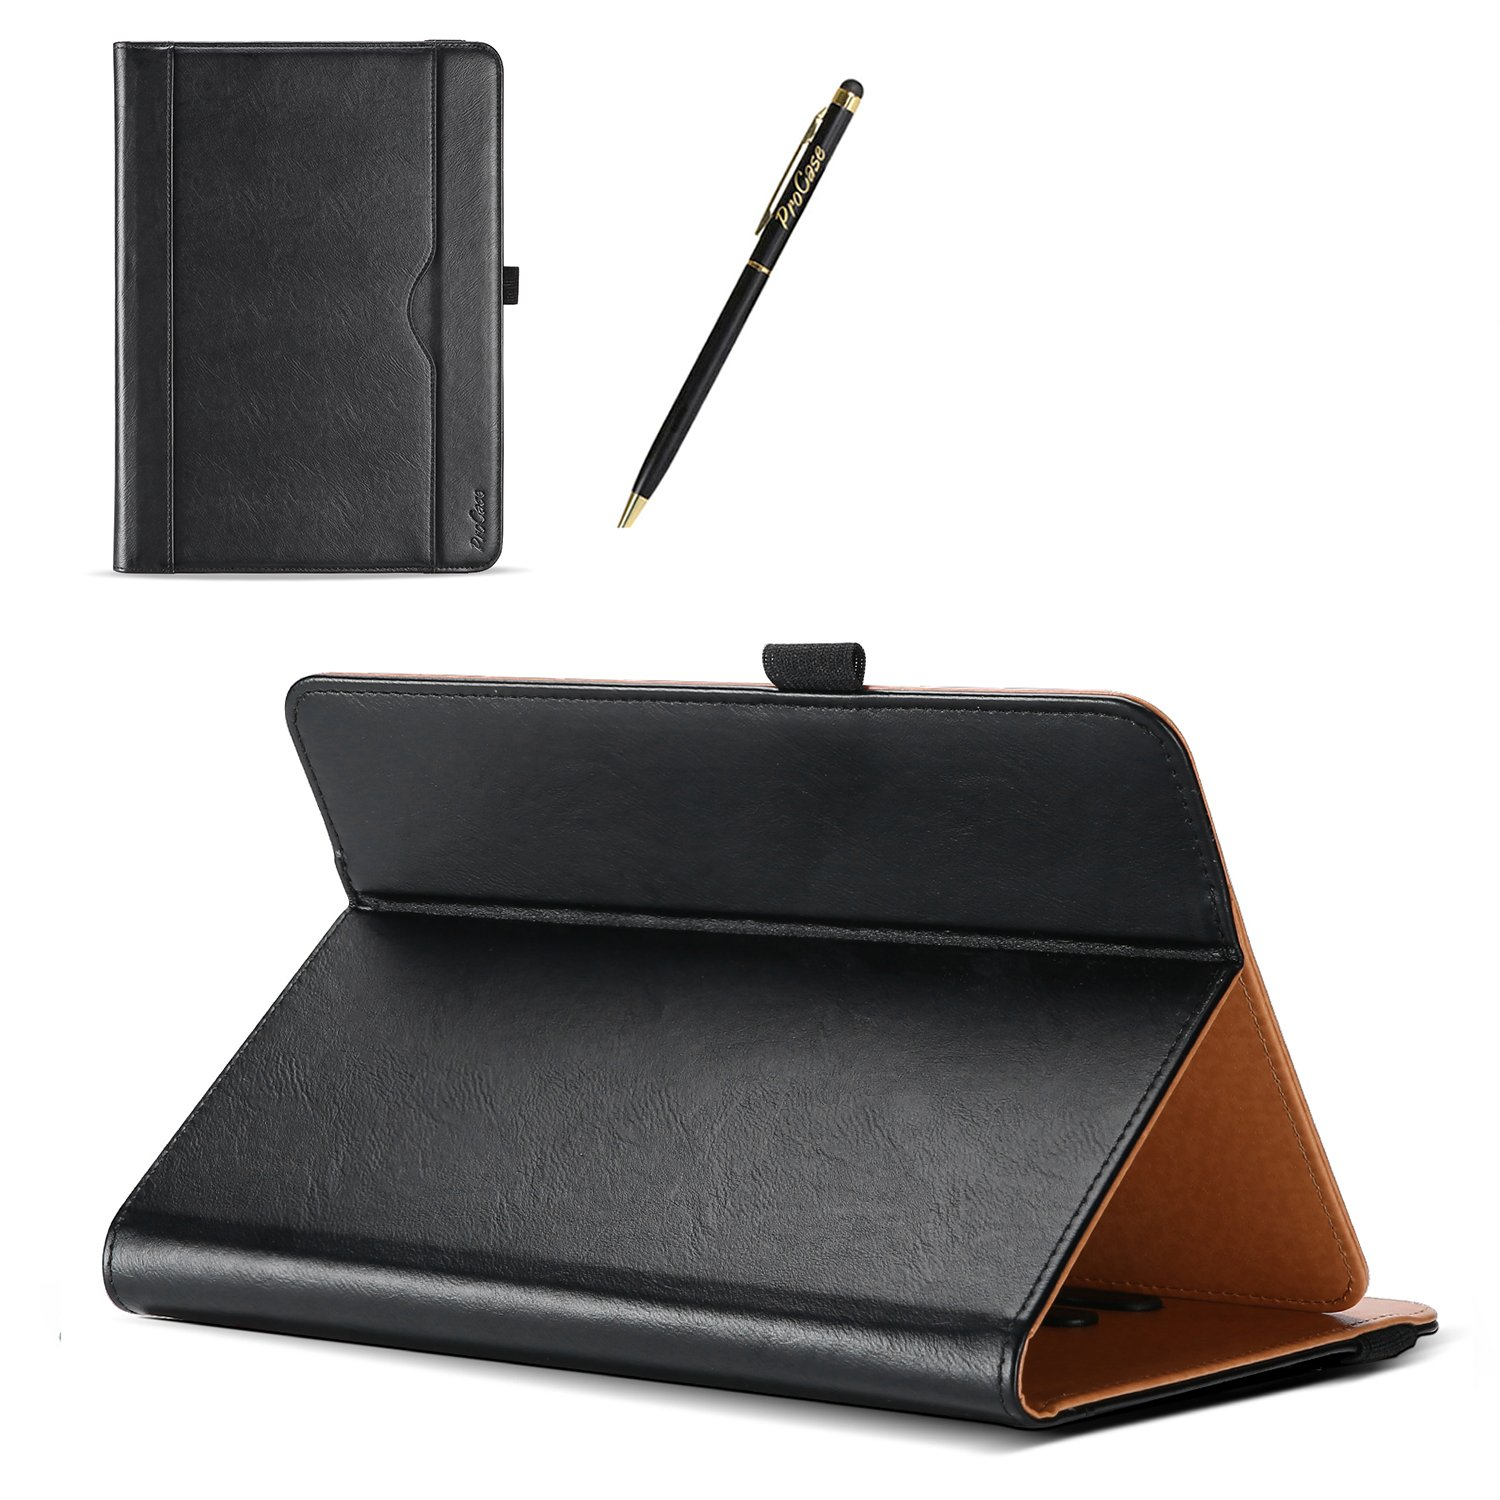 ProCase Universal Case for 9-10 inch Tablet, Stand Folio Case Protective Cover for 9'' 10.1'' Touchscreen Tablet, with Multiple Viewing Angles, Document Card Pocket and Bonus Stylus Pen – Black by ProCase (Image #6)